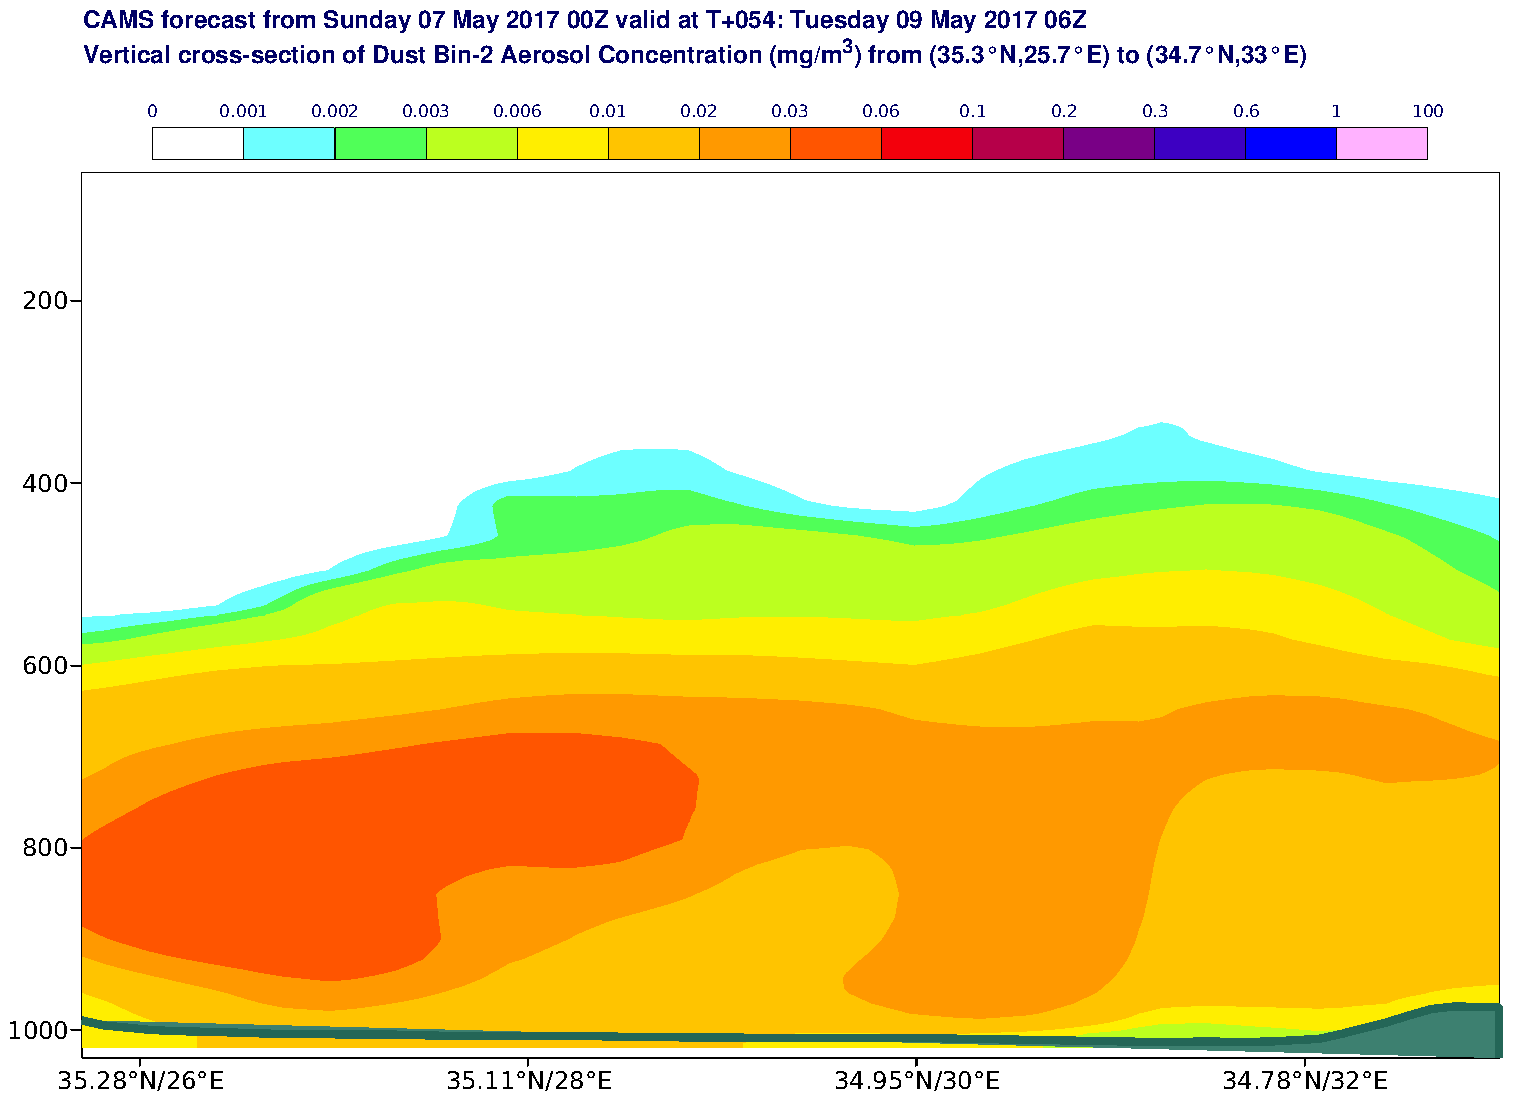 Vertical cross-section of Dust Bin-2 Aerosol Concentration (mg/m3) valid at T54 - 2017-05-09 06:00